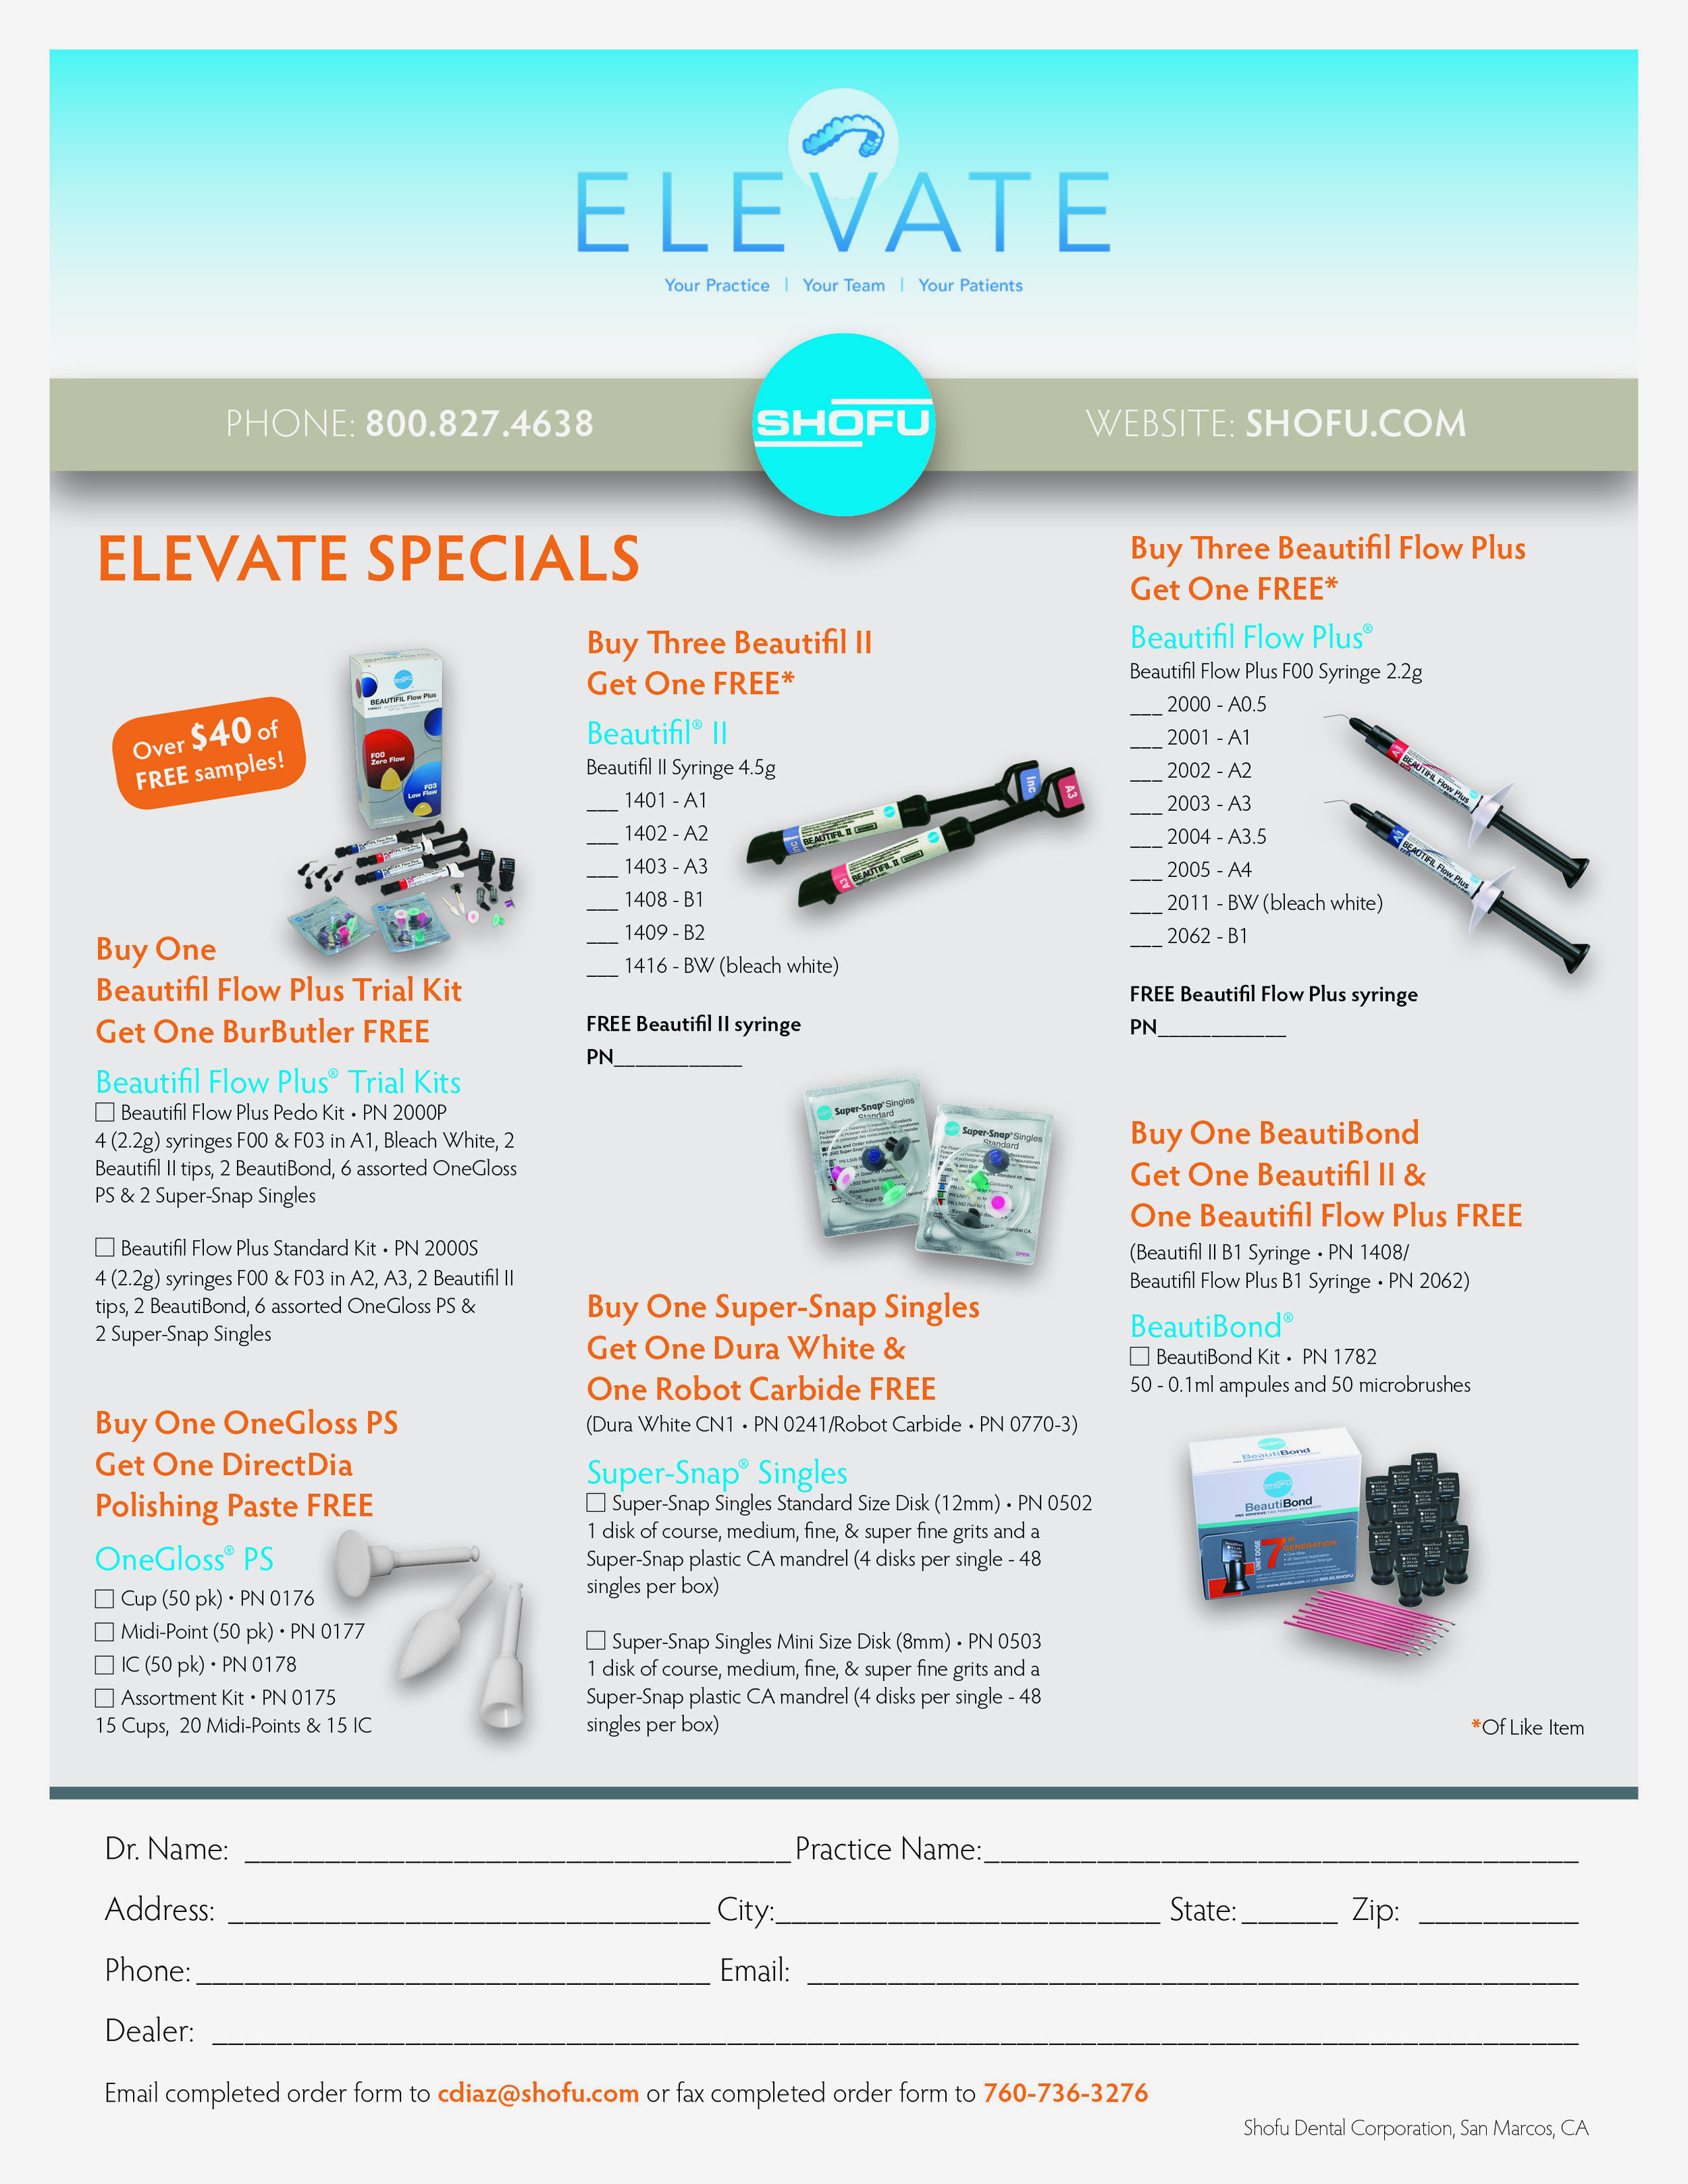 Order form for Elevate, an external company